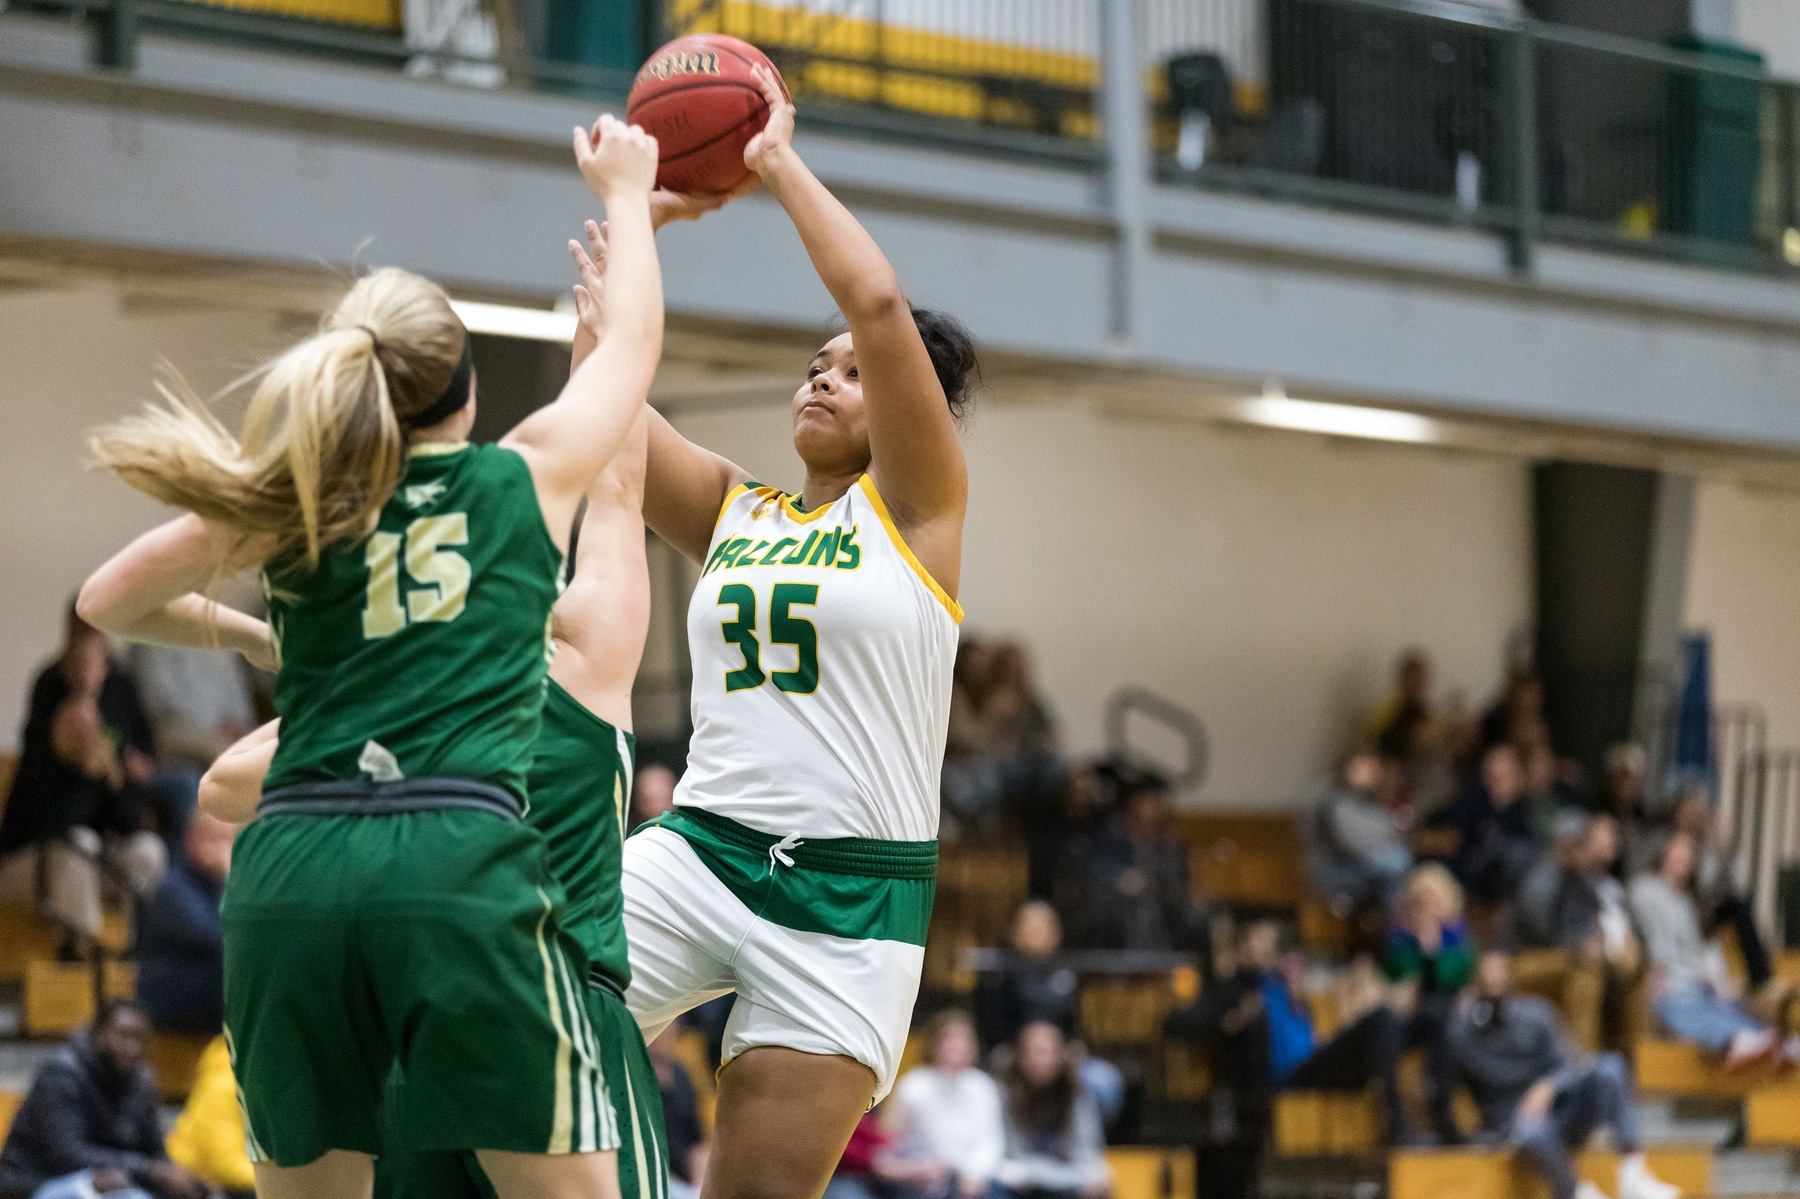 Falcons Fall to Worcester State